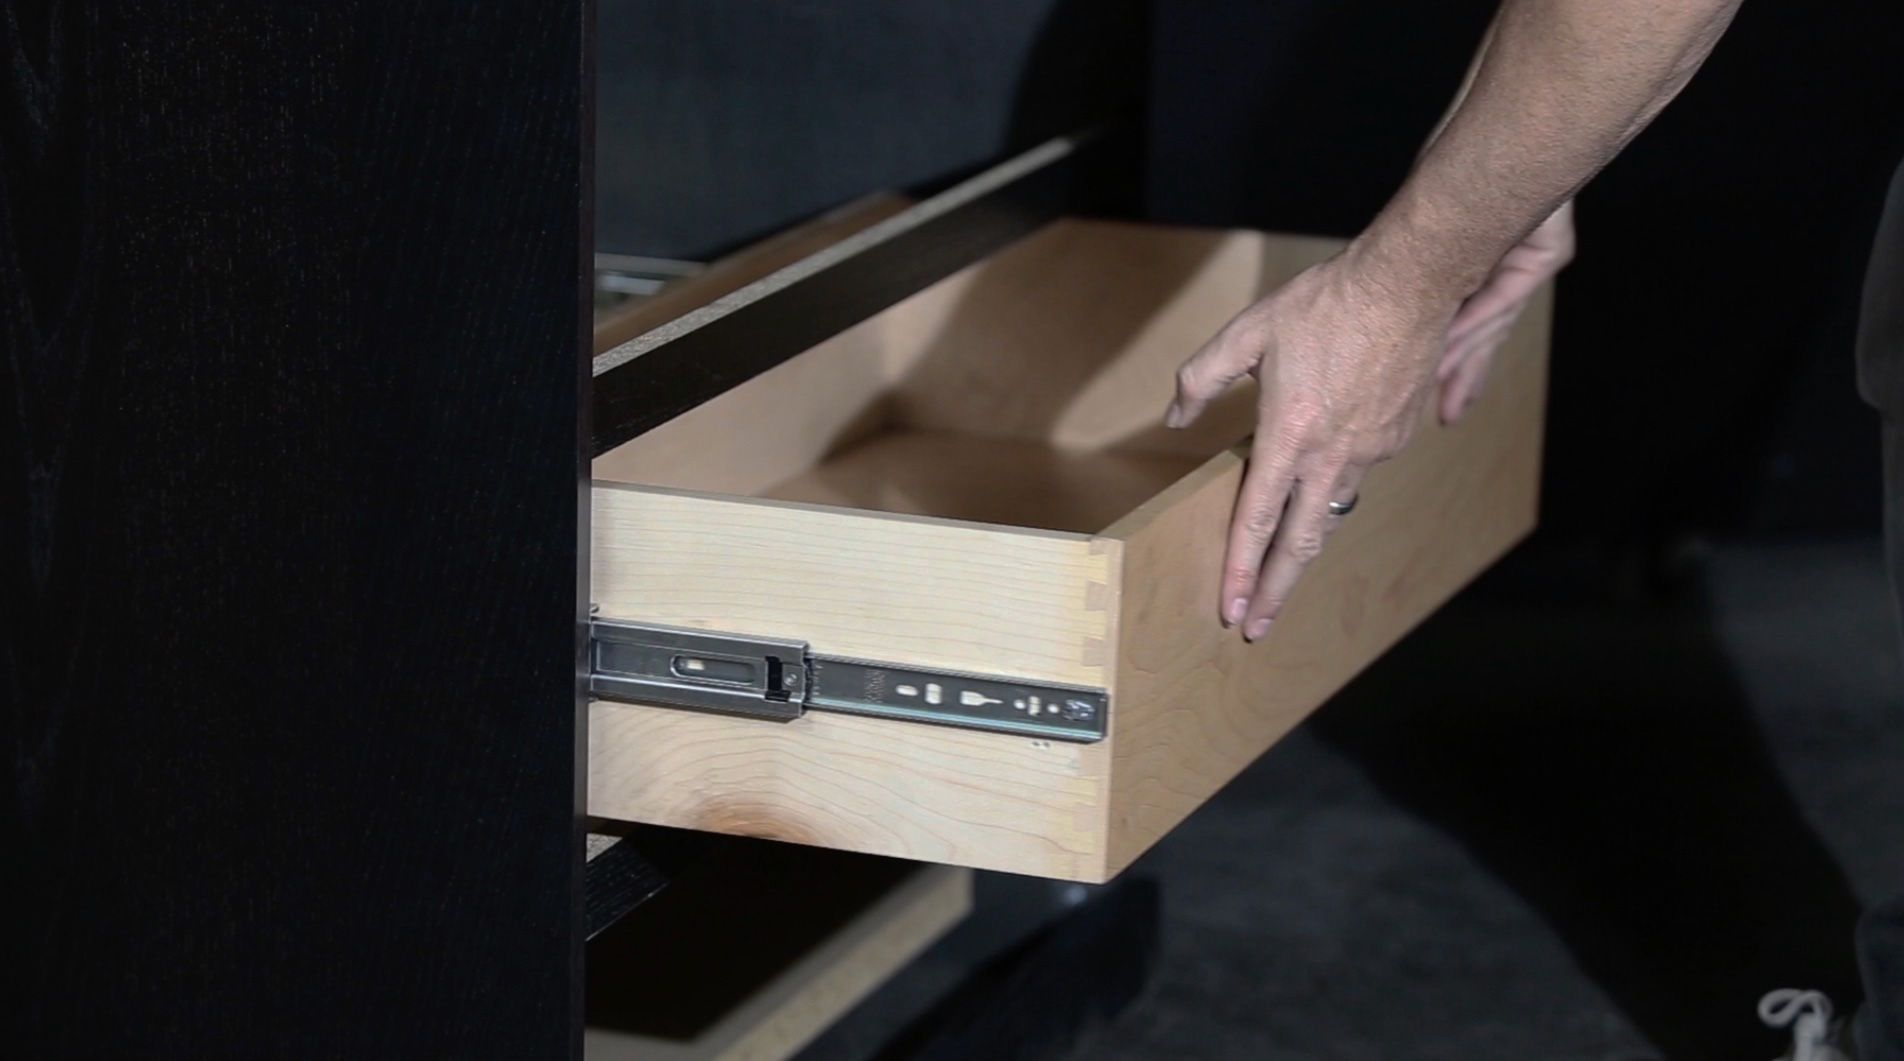 Once your retainers are fully extended outward, insert your drawer. You'll feel resistance when pushing the drawer fully closed—push firmly to reconnect the members.